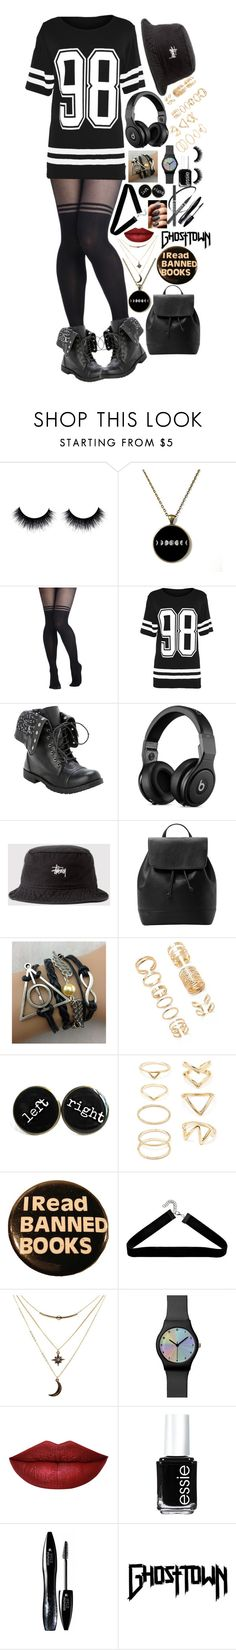 """98th Ghosttown"" by crazzyko ❤ liked on Polyvore featuring Stussy, MANGO, Forever 21, Charlotte Russe, Essie, Lancôme, women's clothing, women, female and woman"